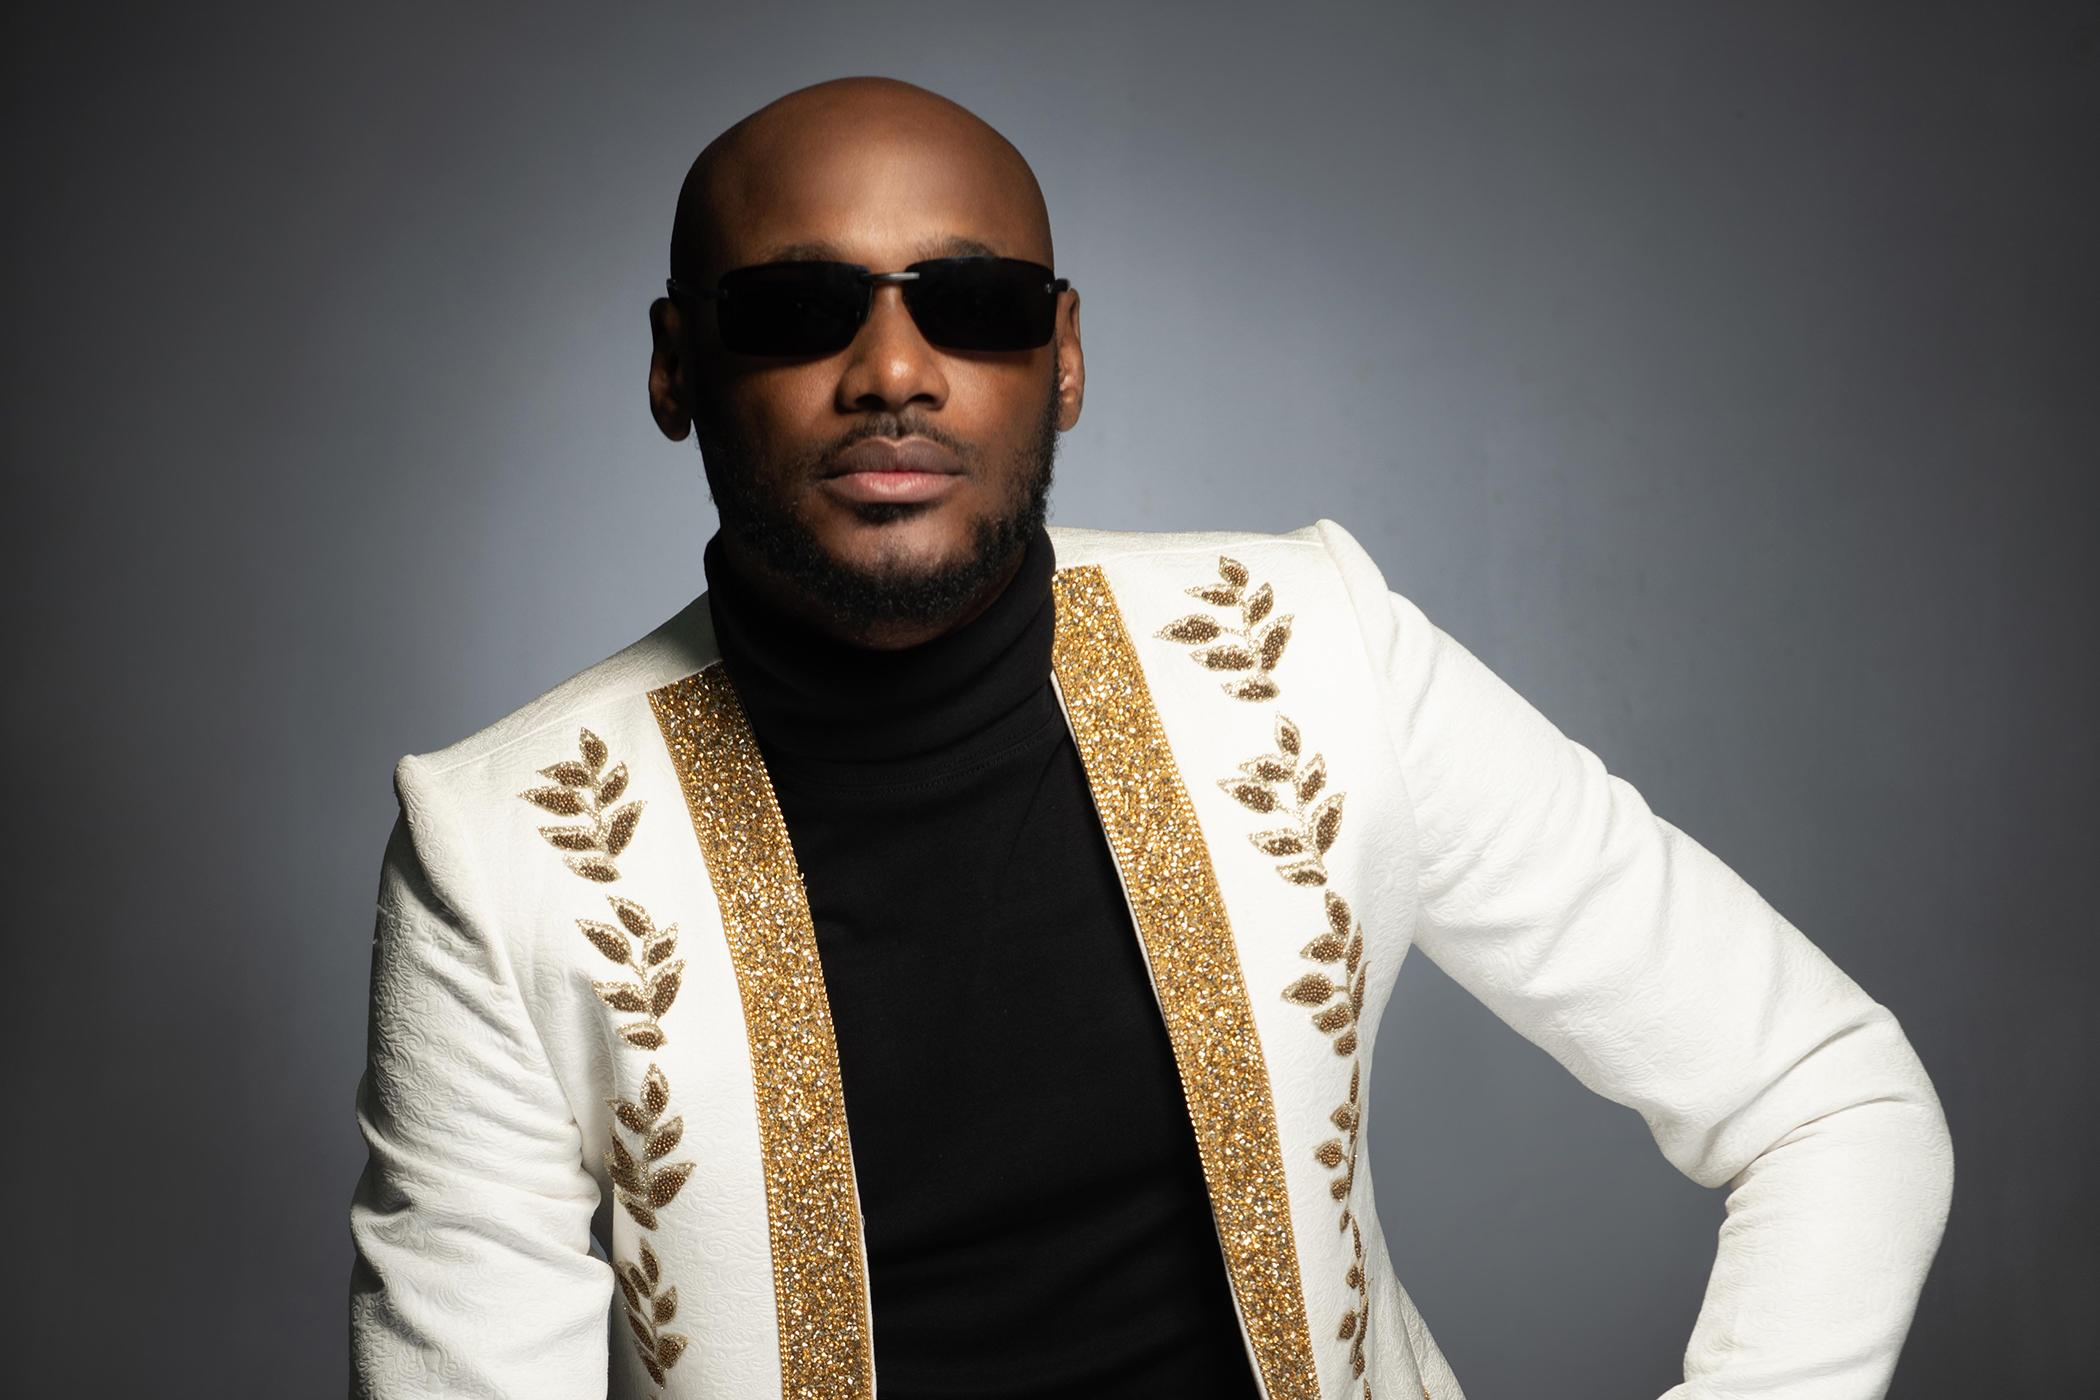 #EndSARS: We need a total shutdown until politicians start to answer - Tuface, #EndSARS: We need a total shutdown until politicians start to answer – Tuface, Latest Nigeria News, Daily Devotionals & Celebrity Gossips - Chidispalace